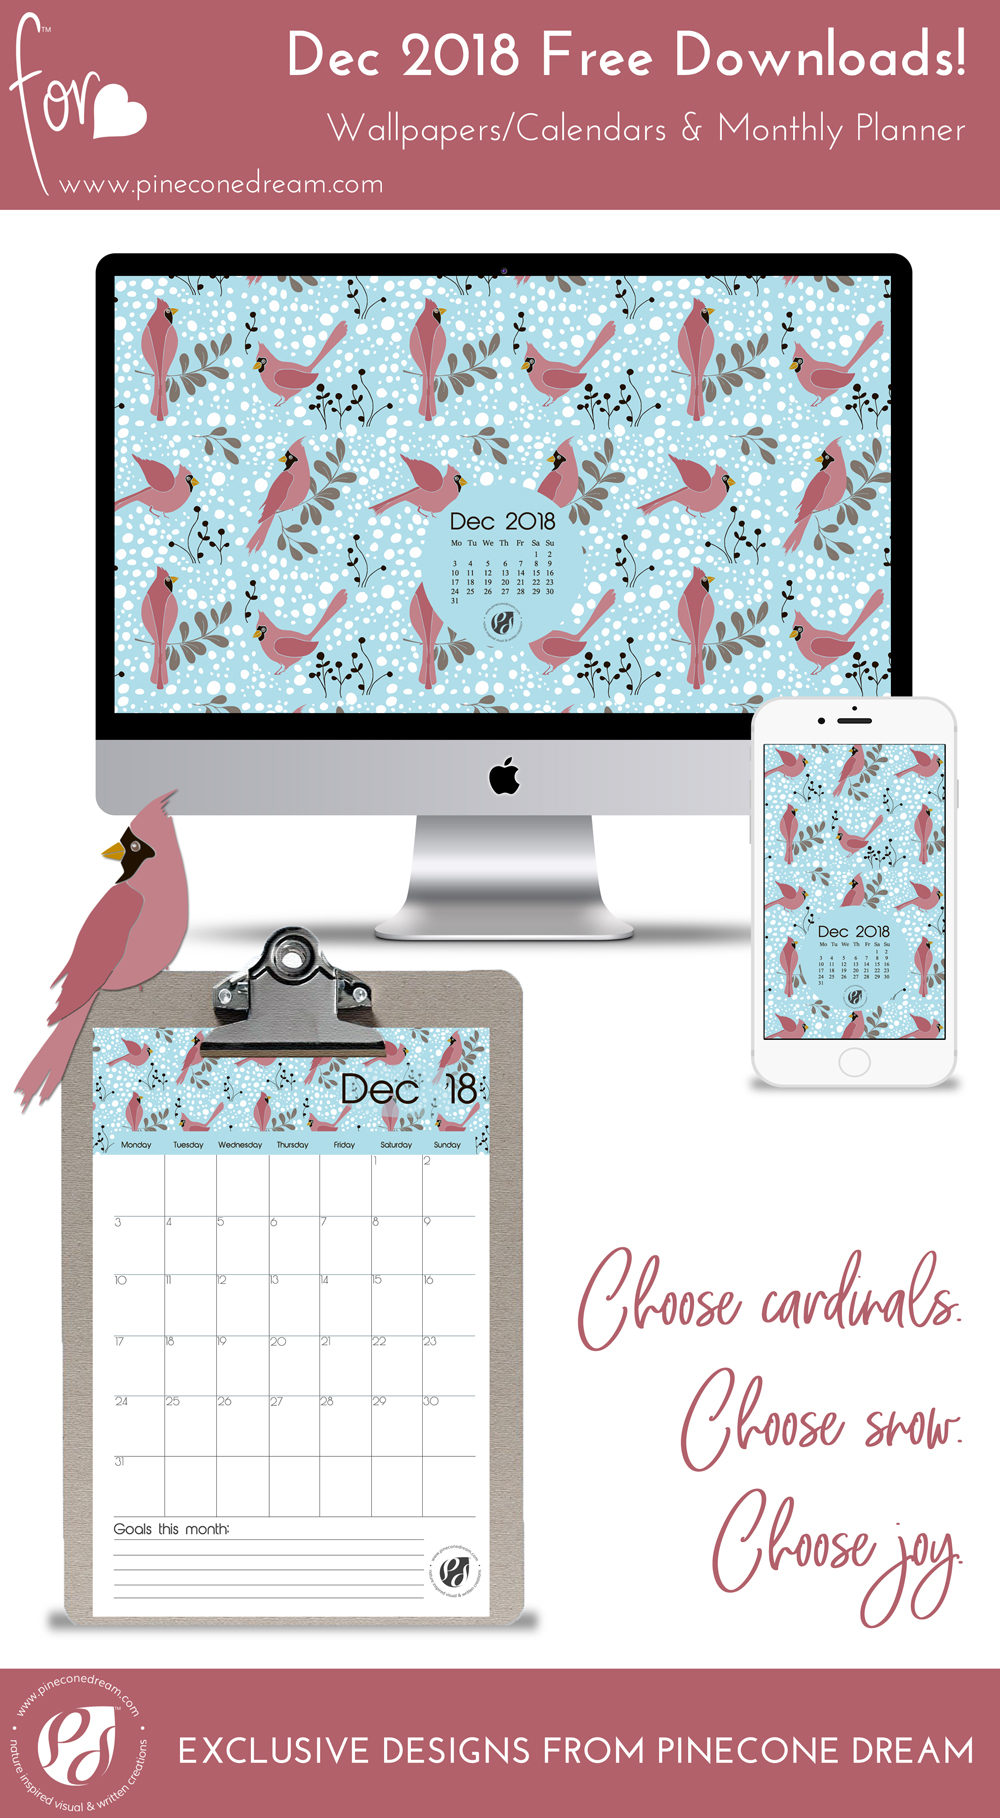 December2018_Wallpapers&Calendars_Bundle_Pineconedream